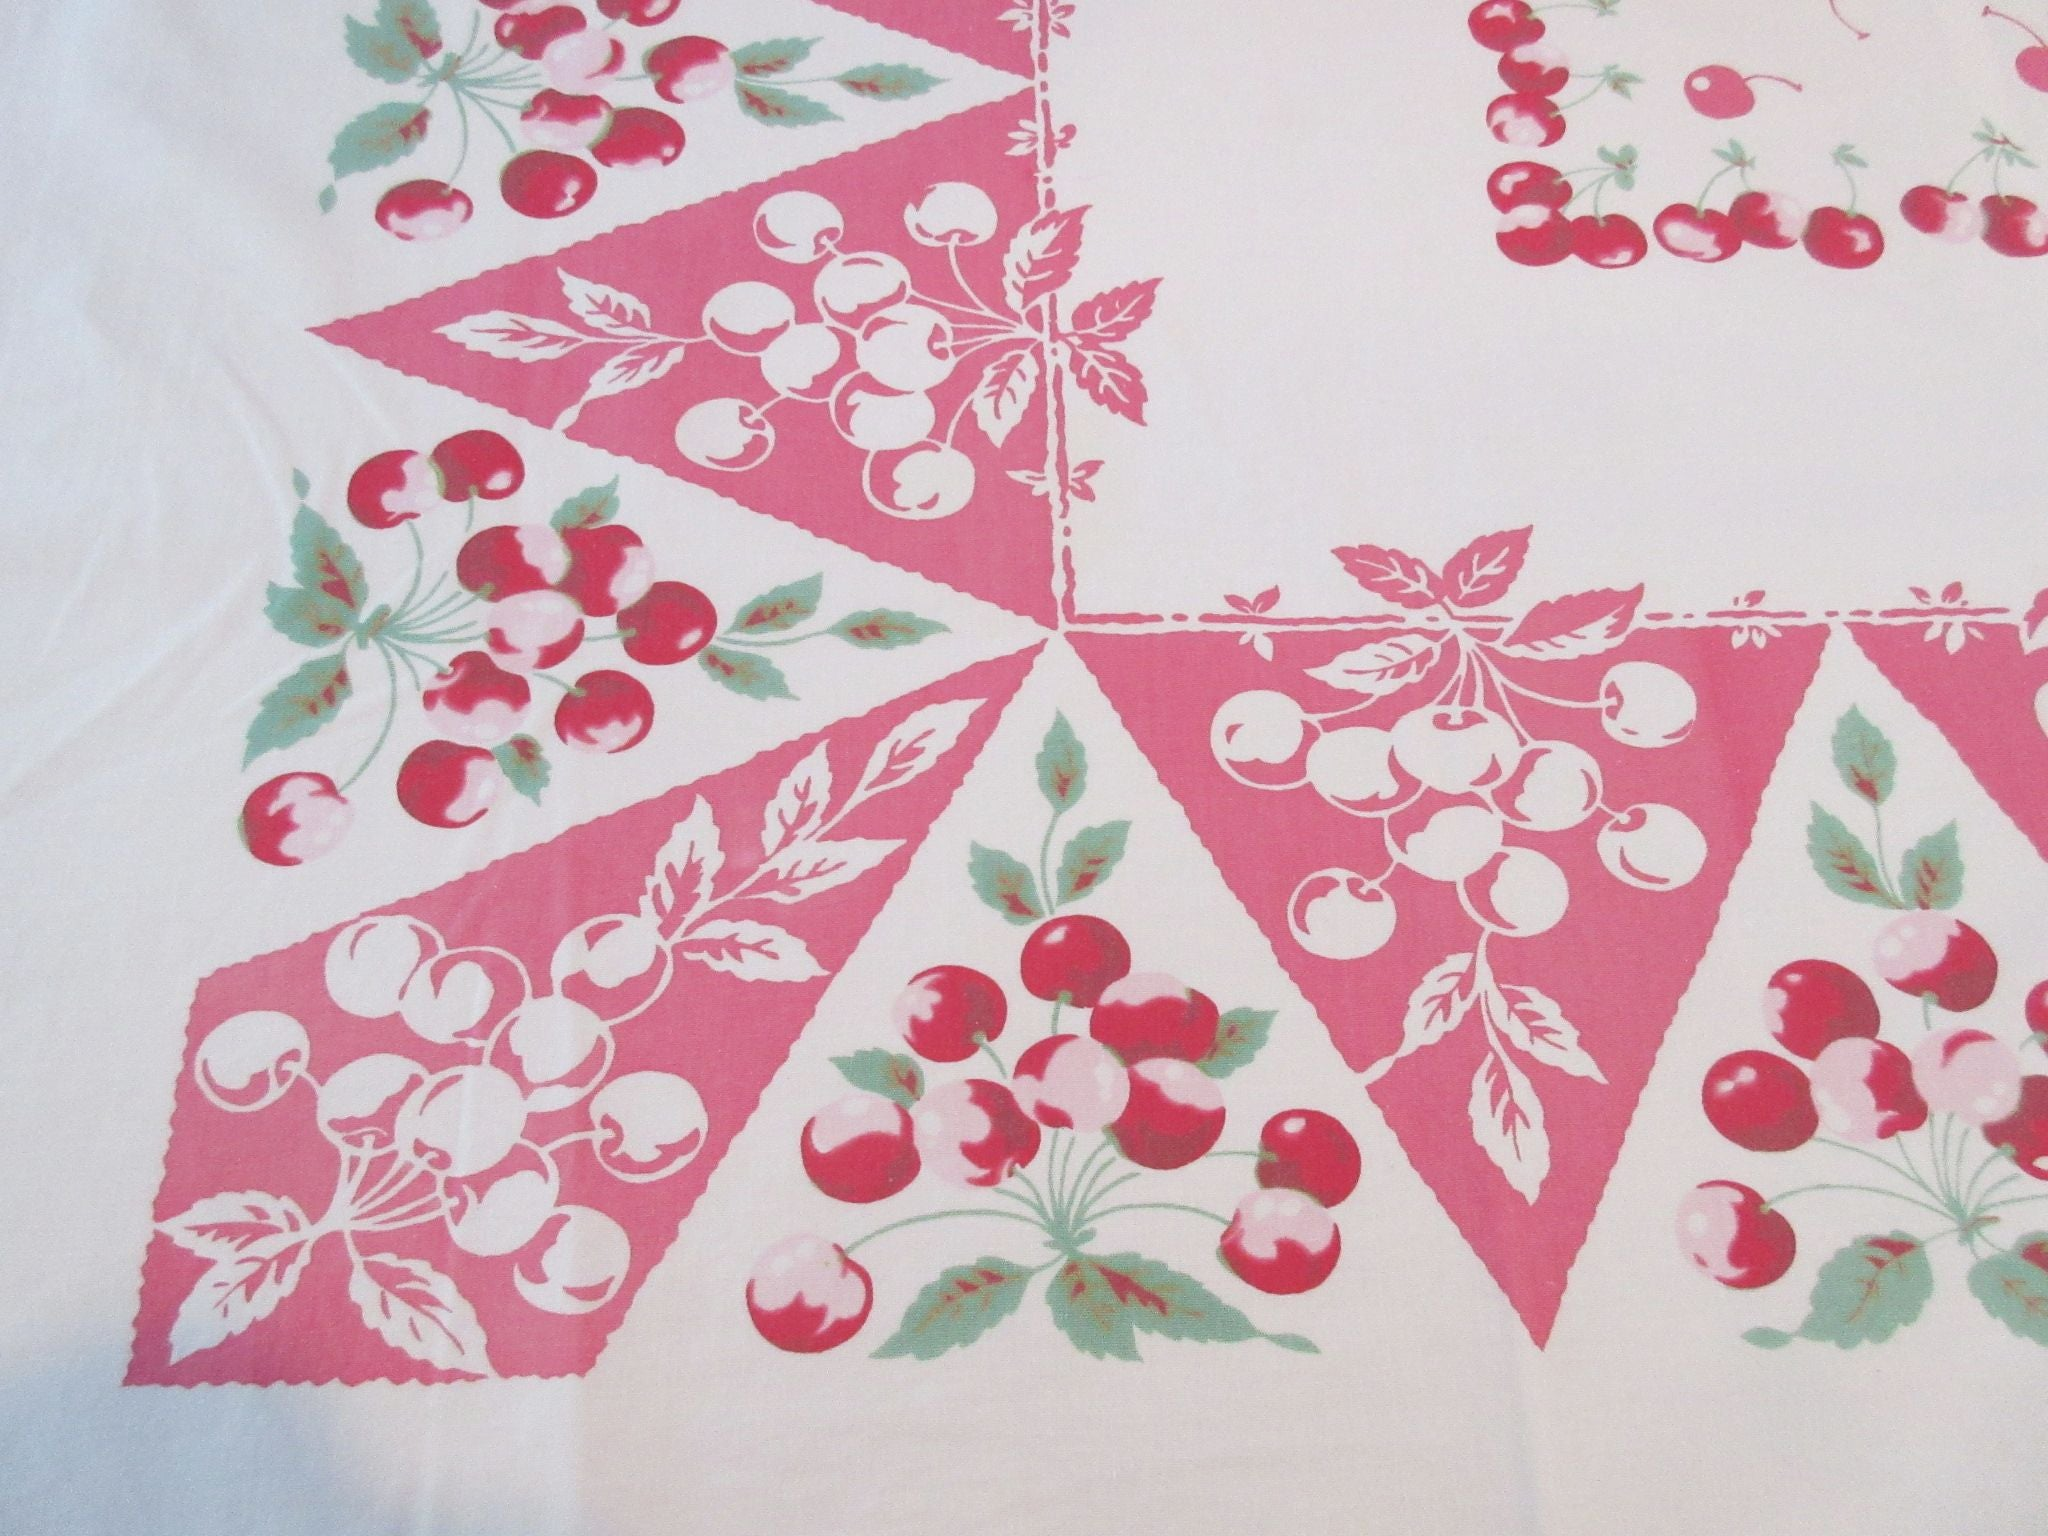 Cherries on Pink Pyramids Fruit Vintage Printed Tablecloth (53 X 45)